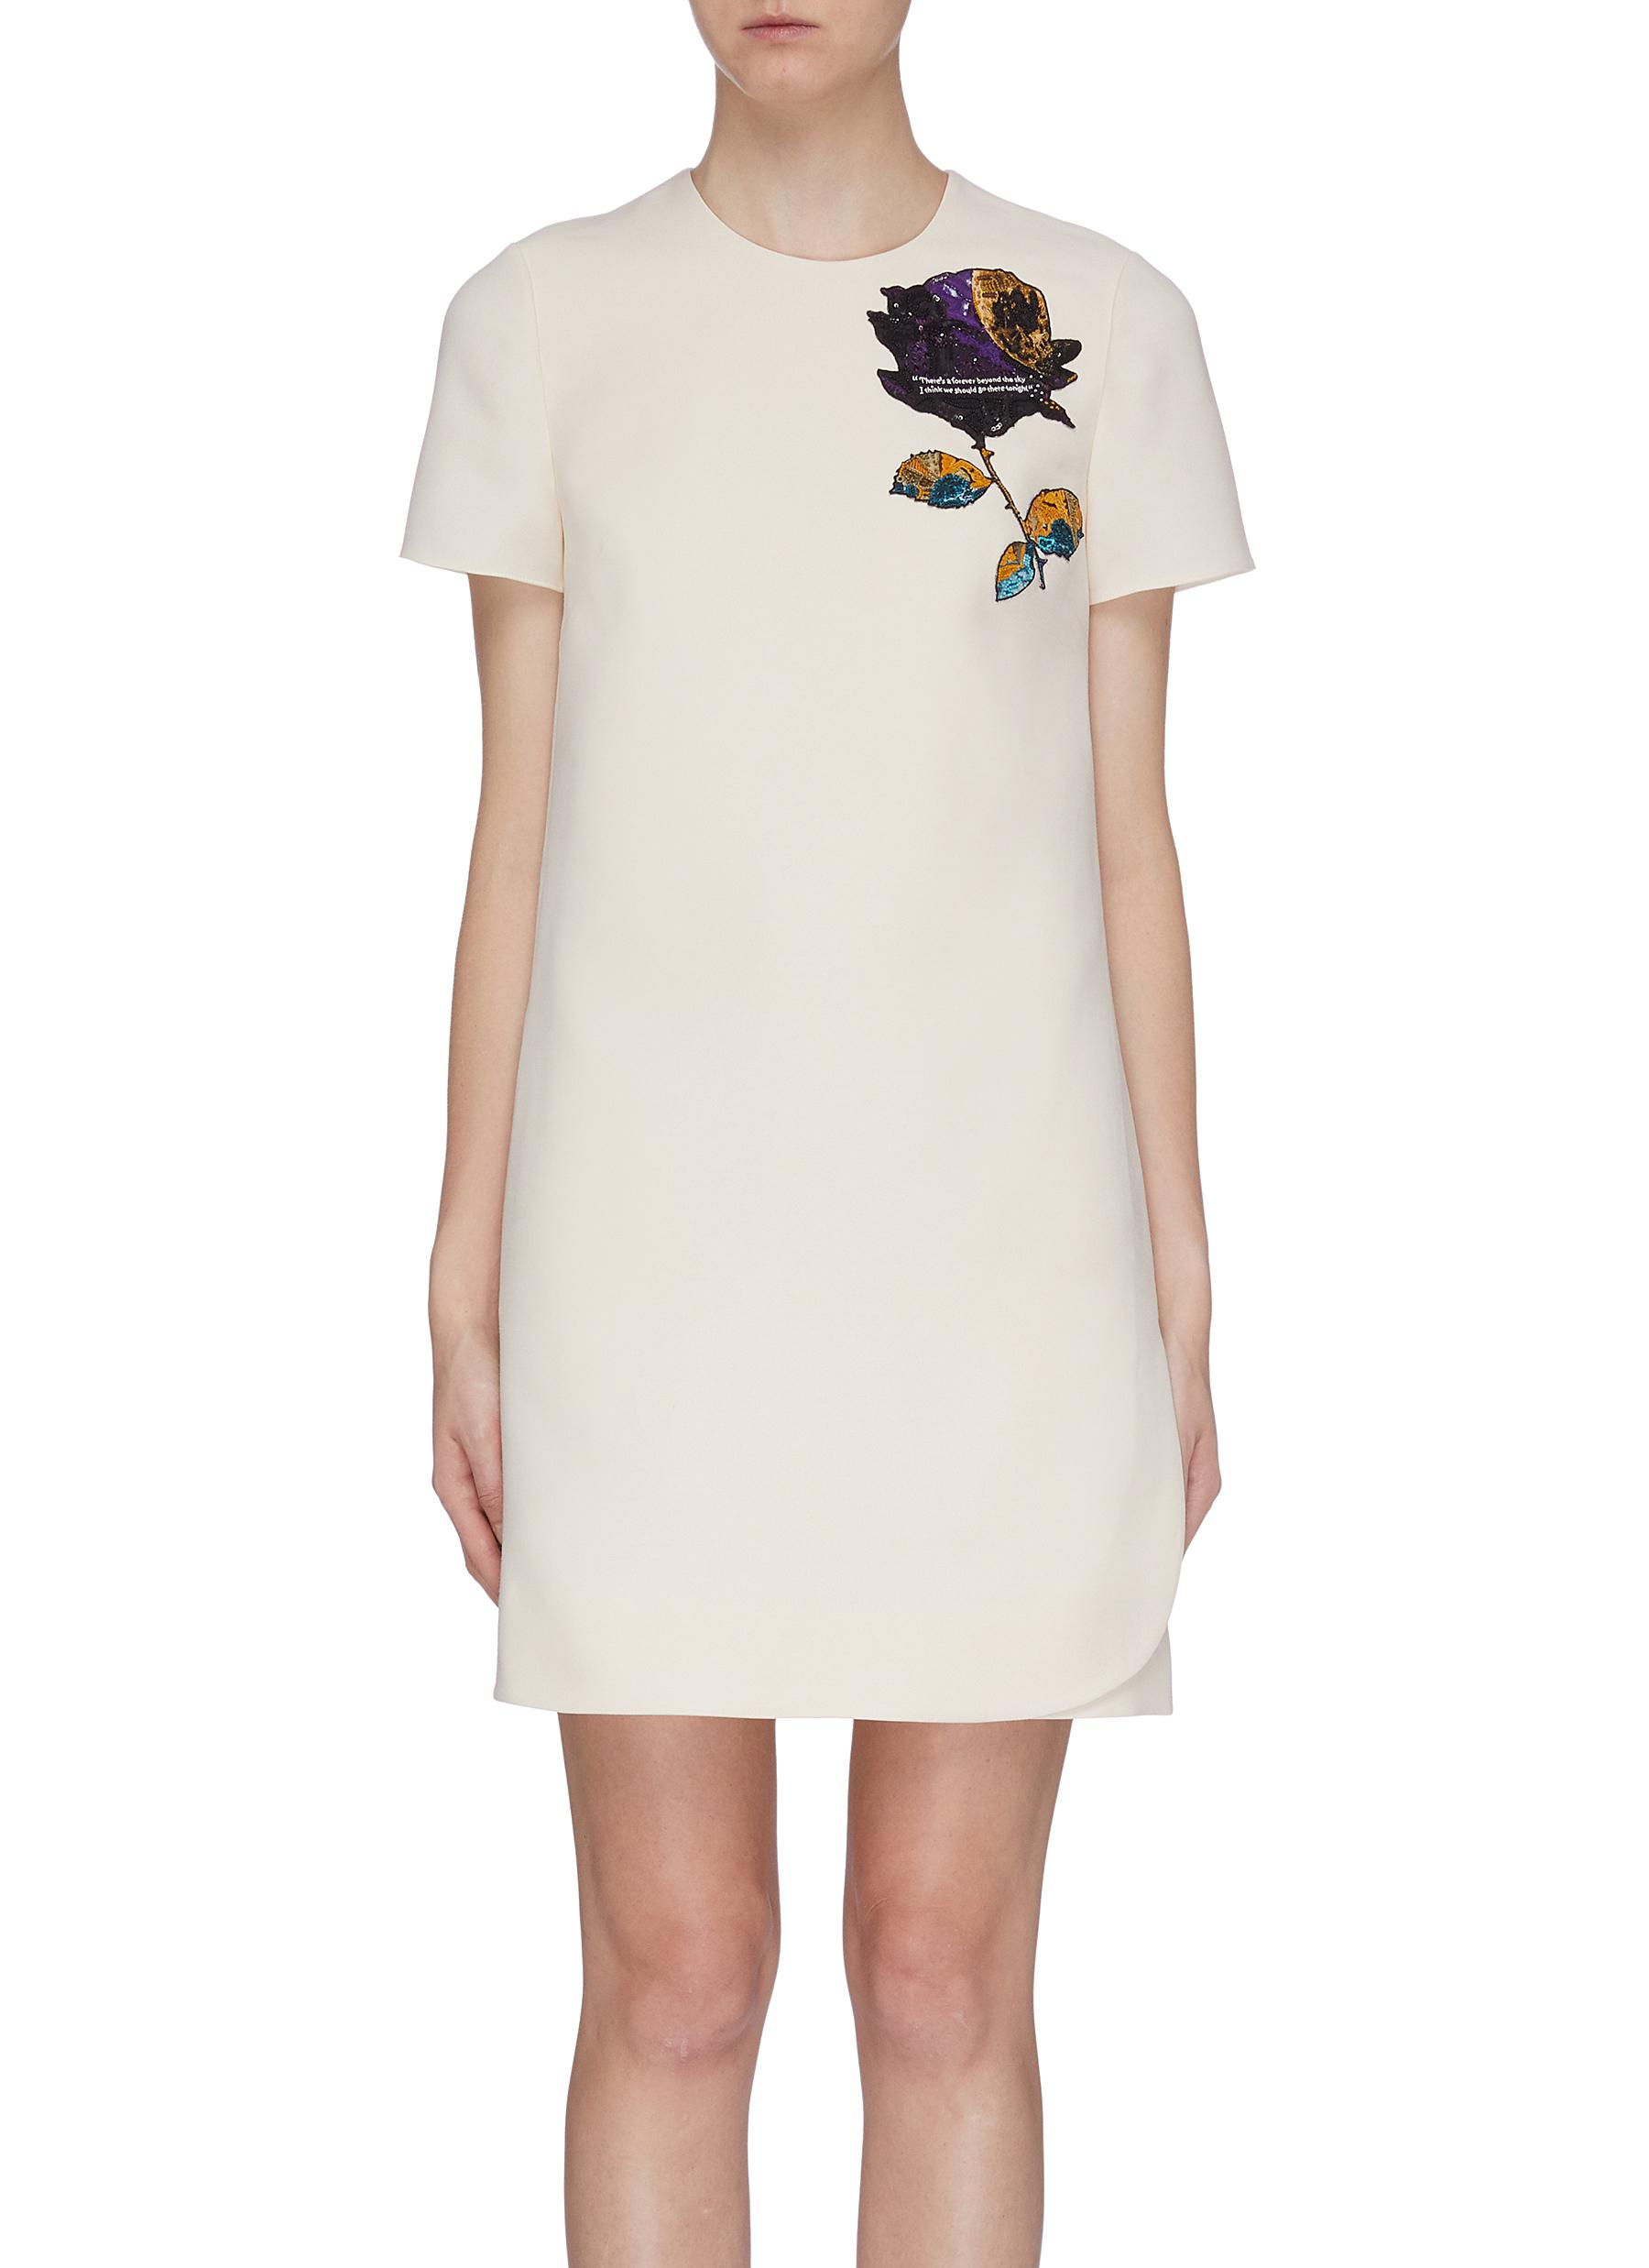 Cosmos Rose appliqué dress by Valentino